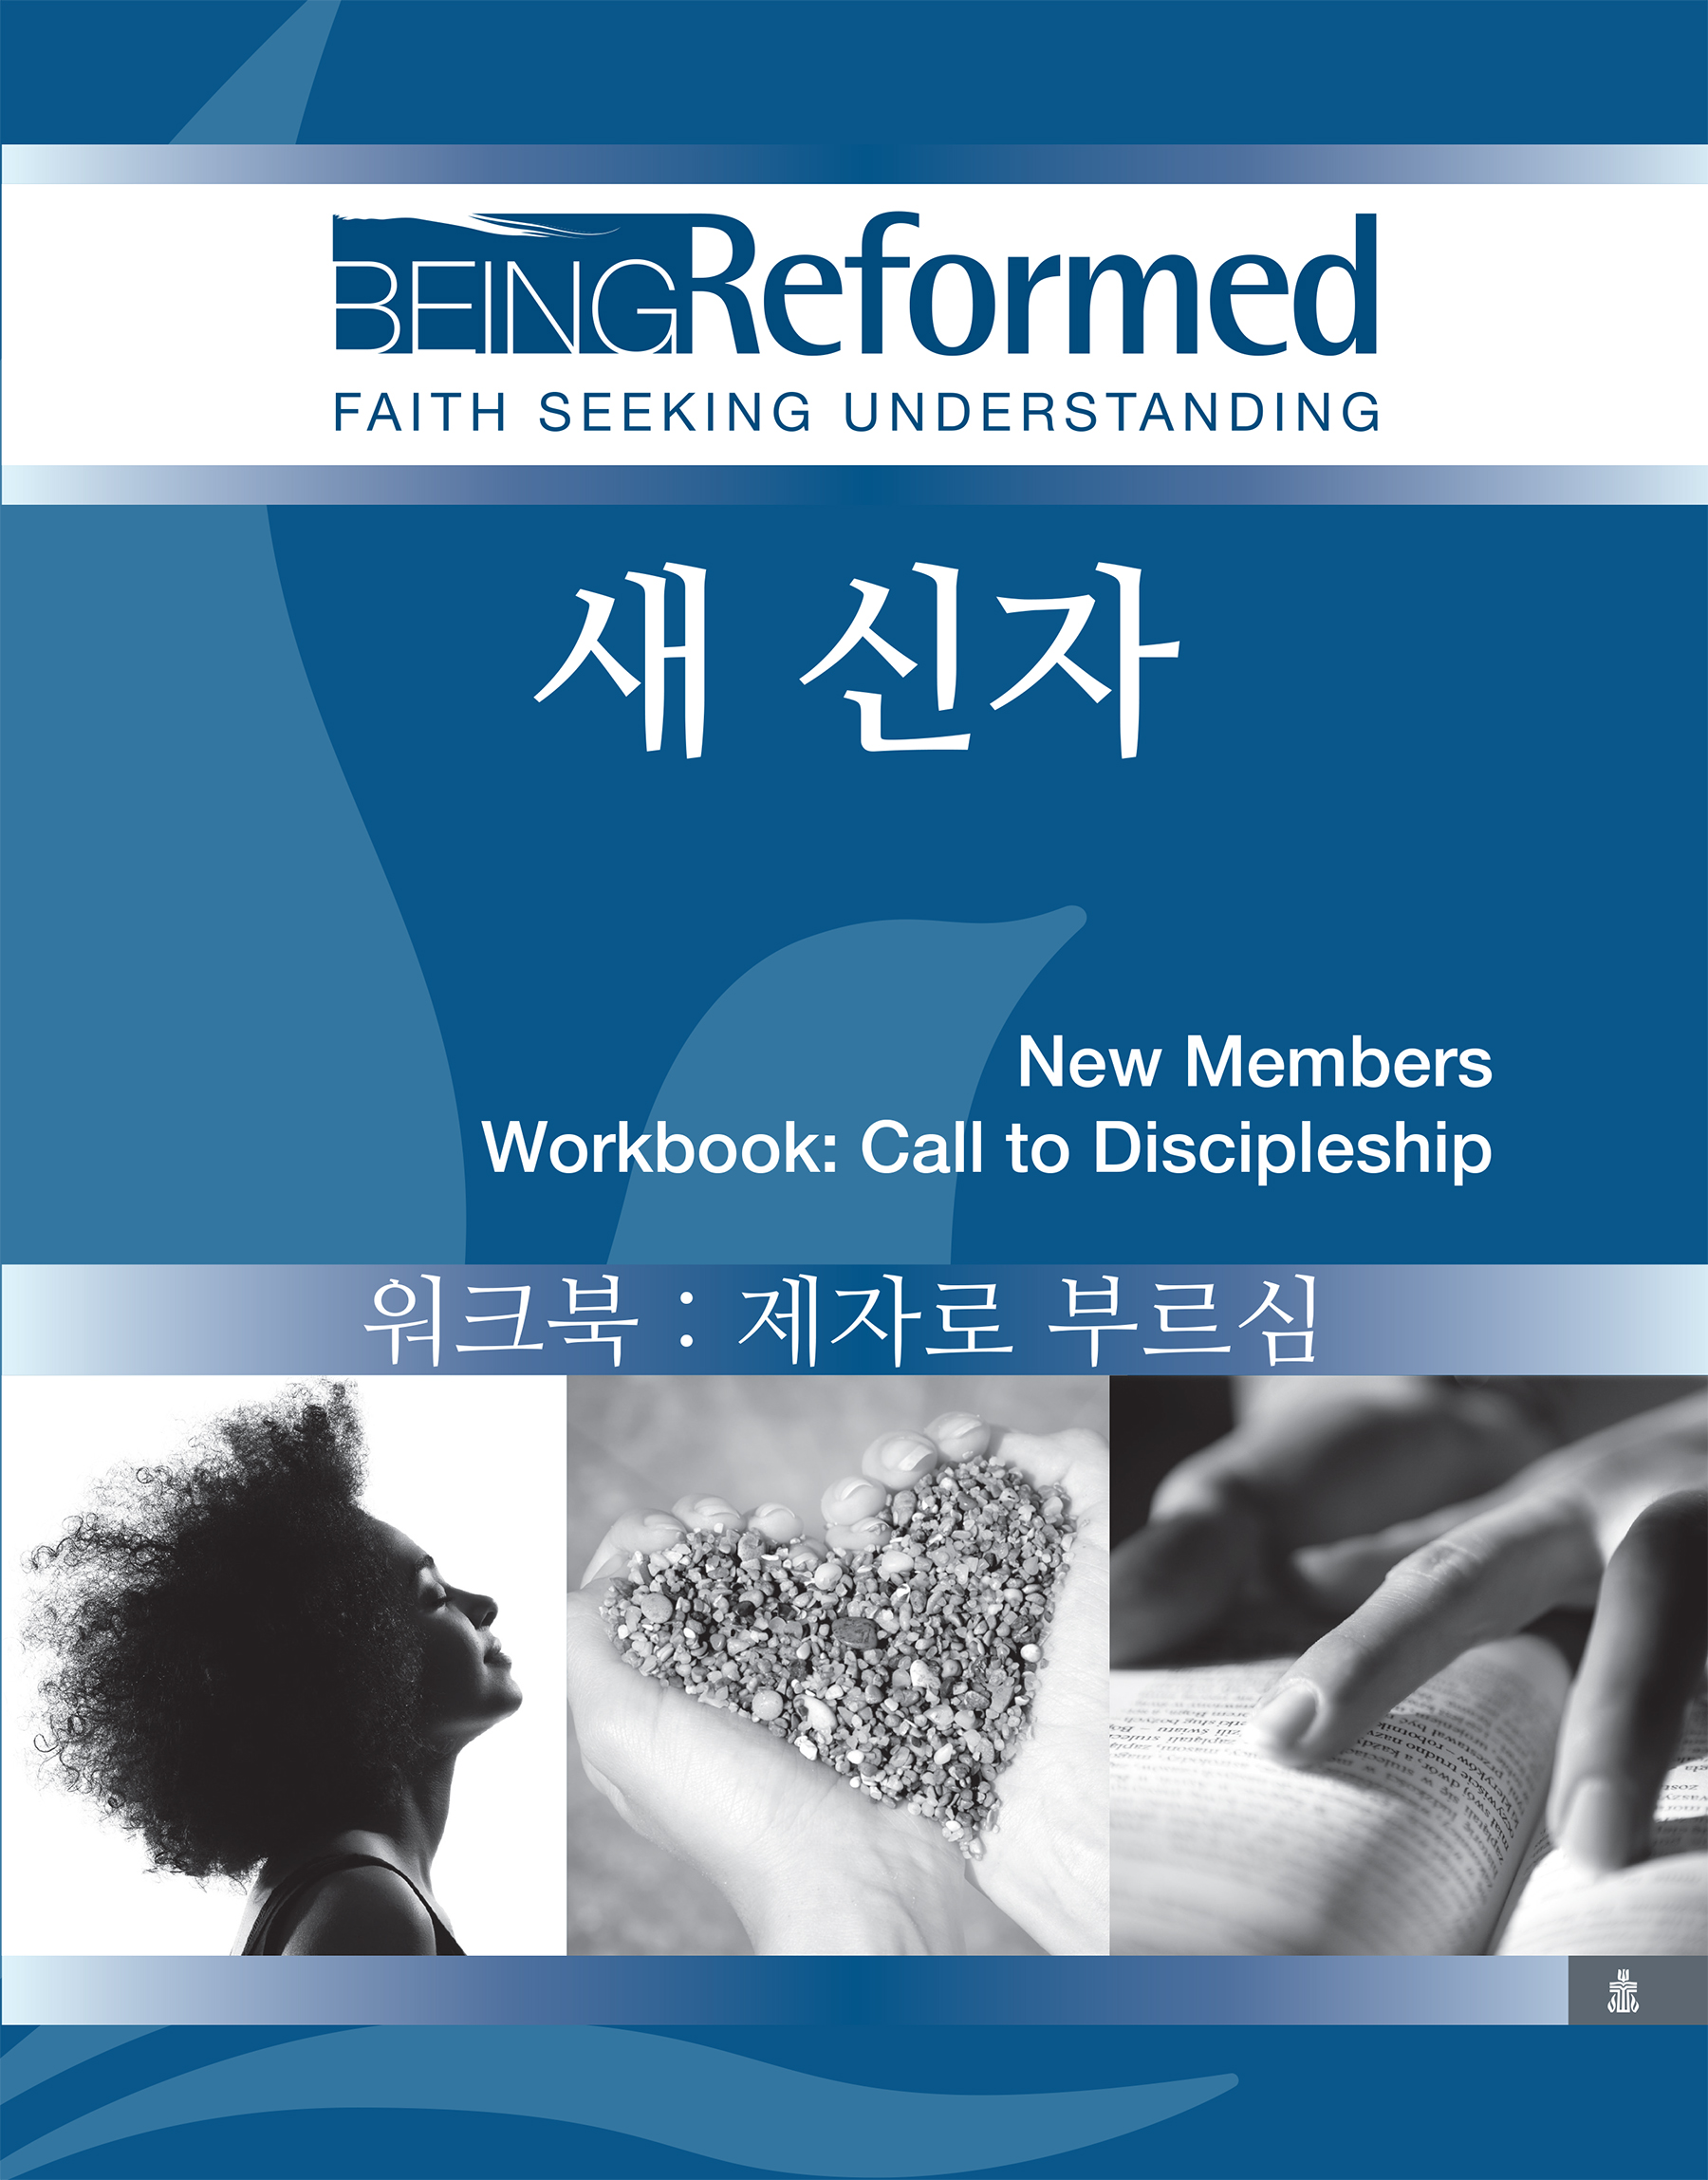 KOREAN NEW MEMBERS WORKBOOK: CALL TO DISCIPLE